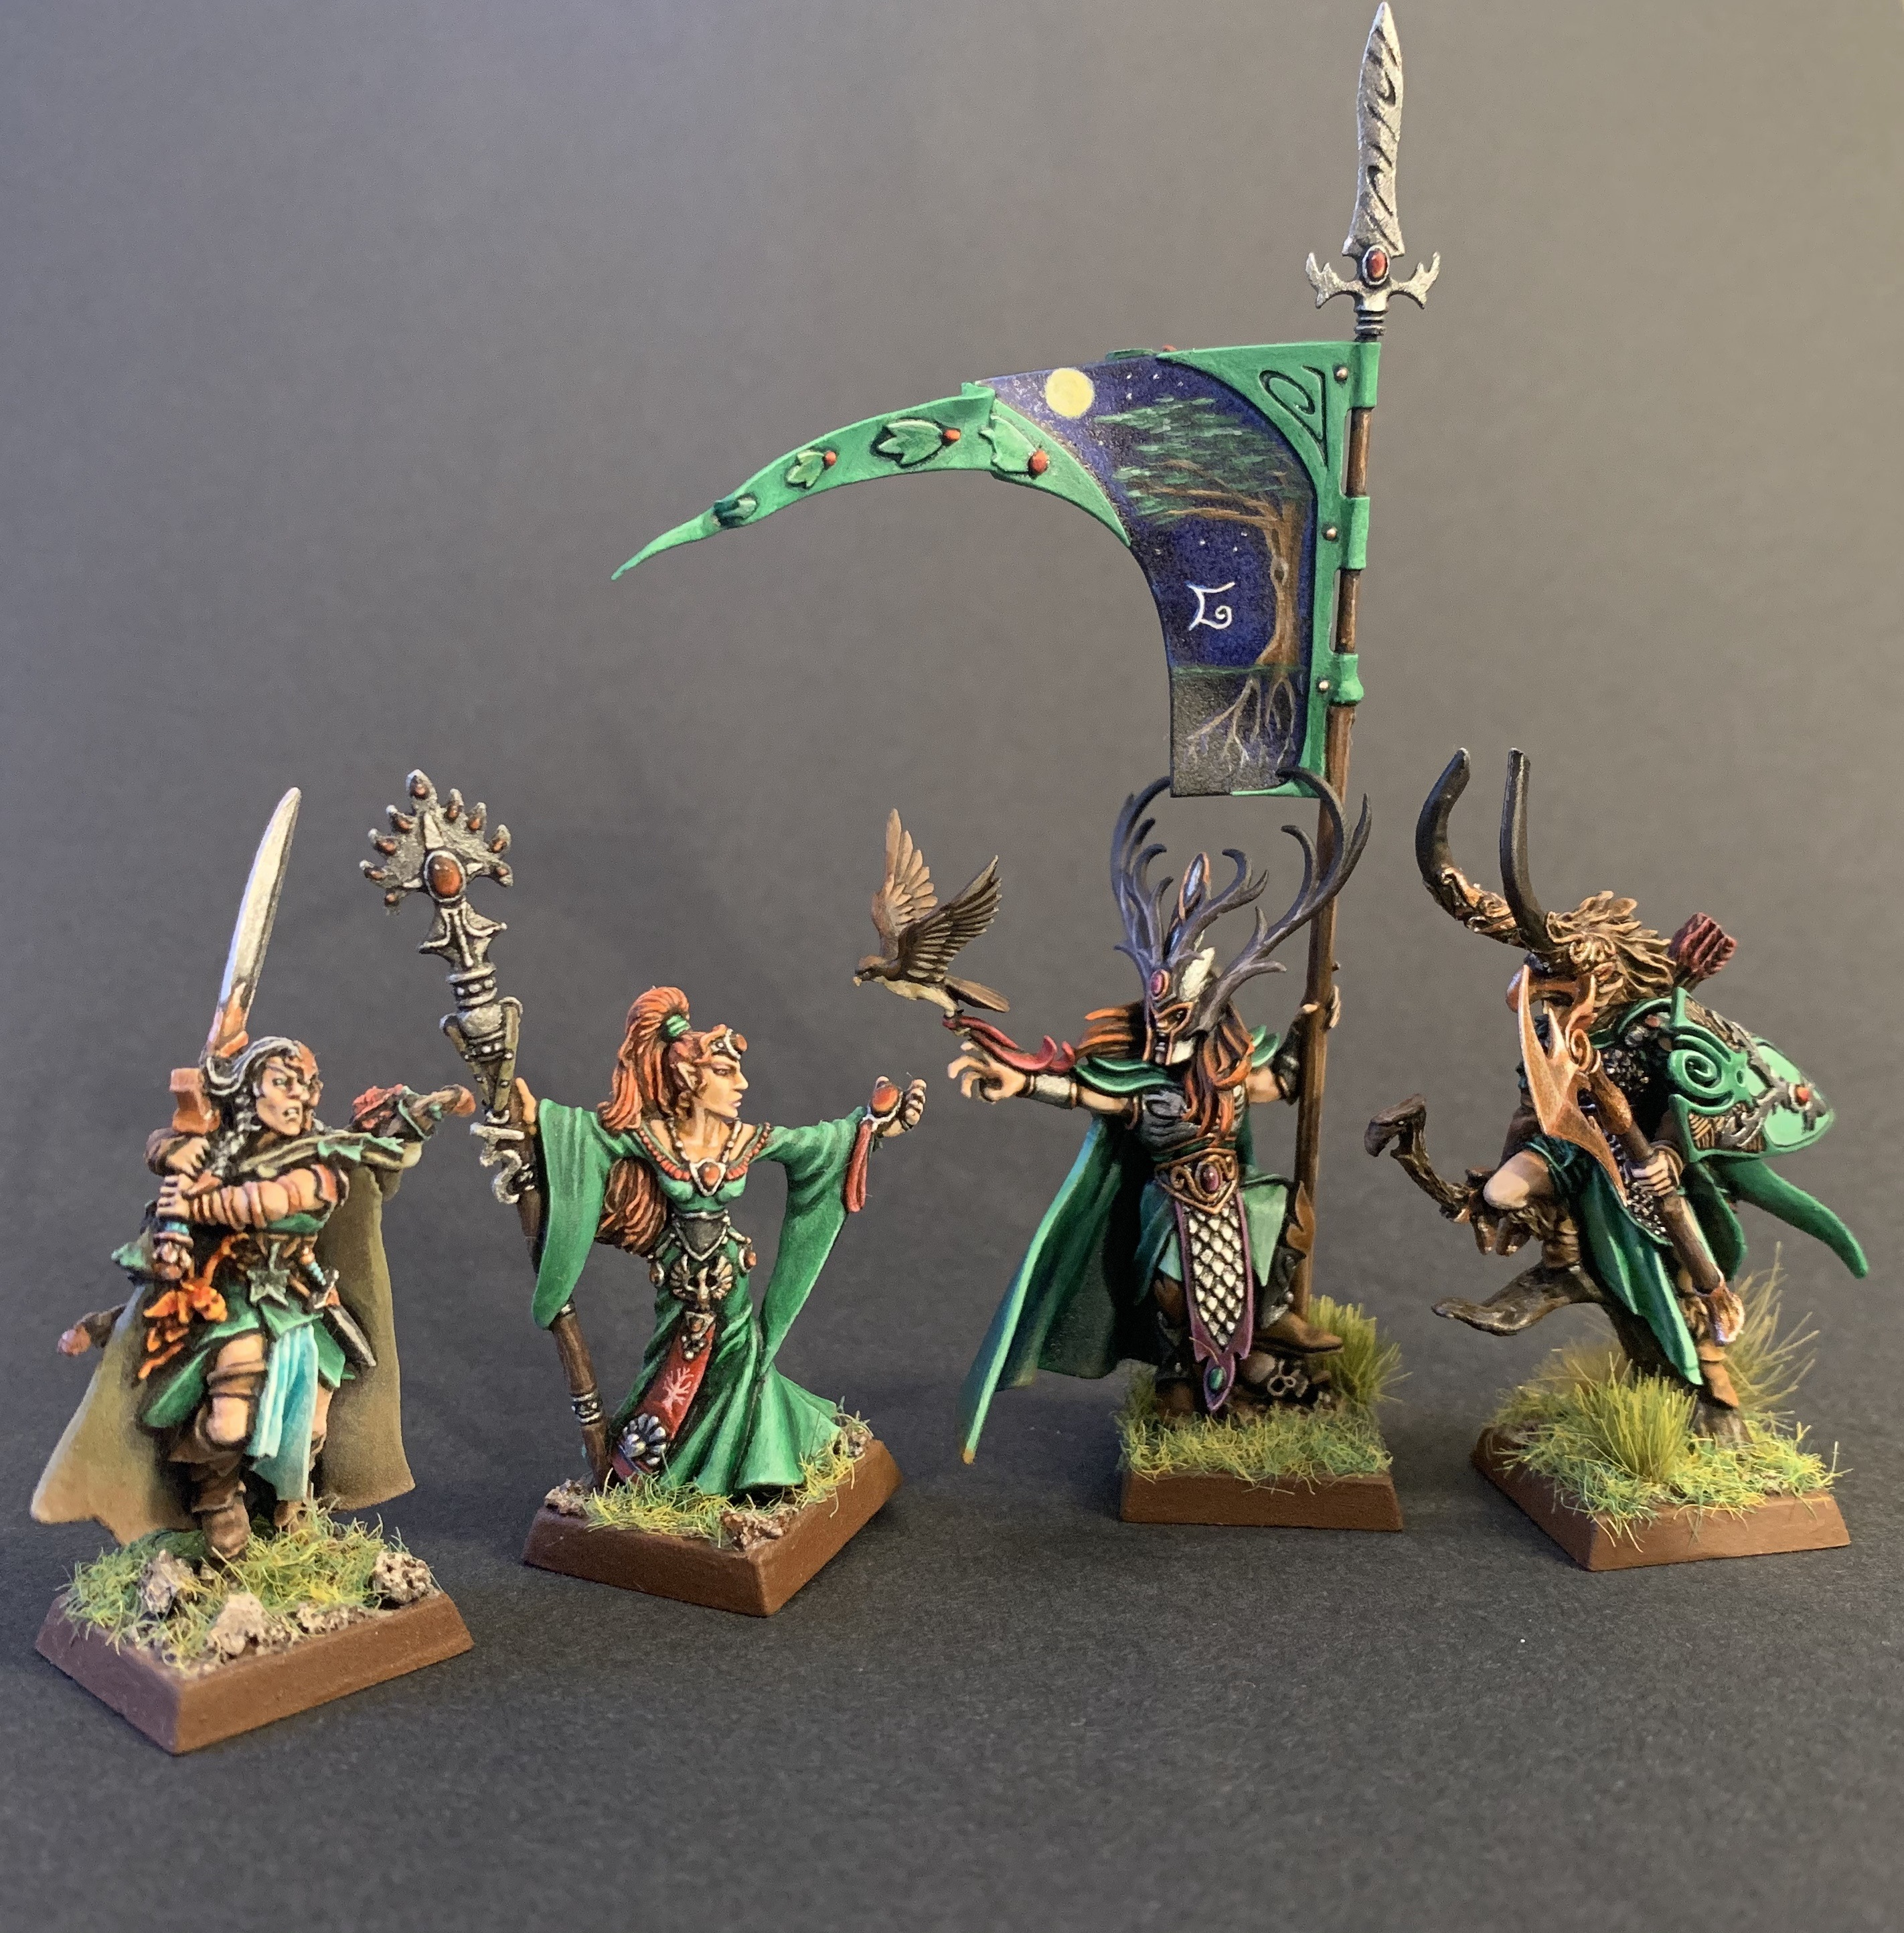 Wood elf command - standard, queen, and lords